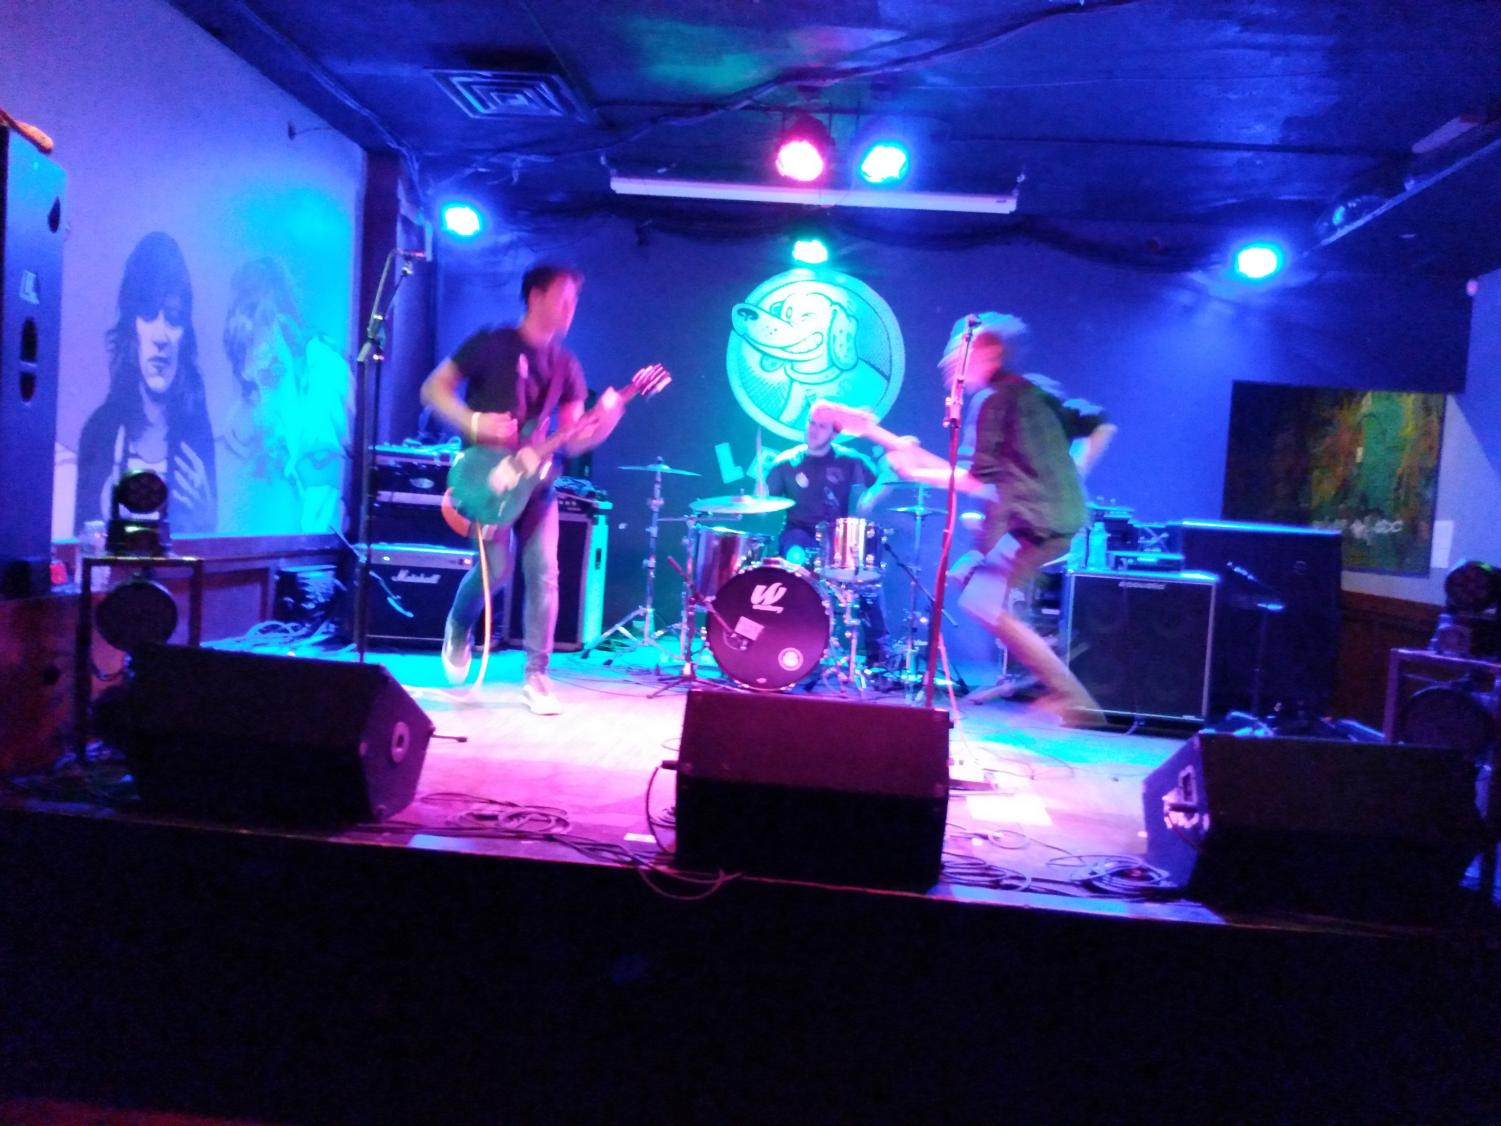 Played Out performing at Lefty's Live Music on 11/08/19.